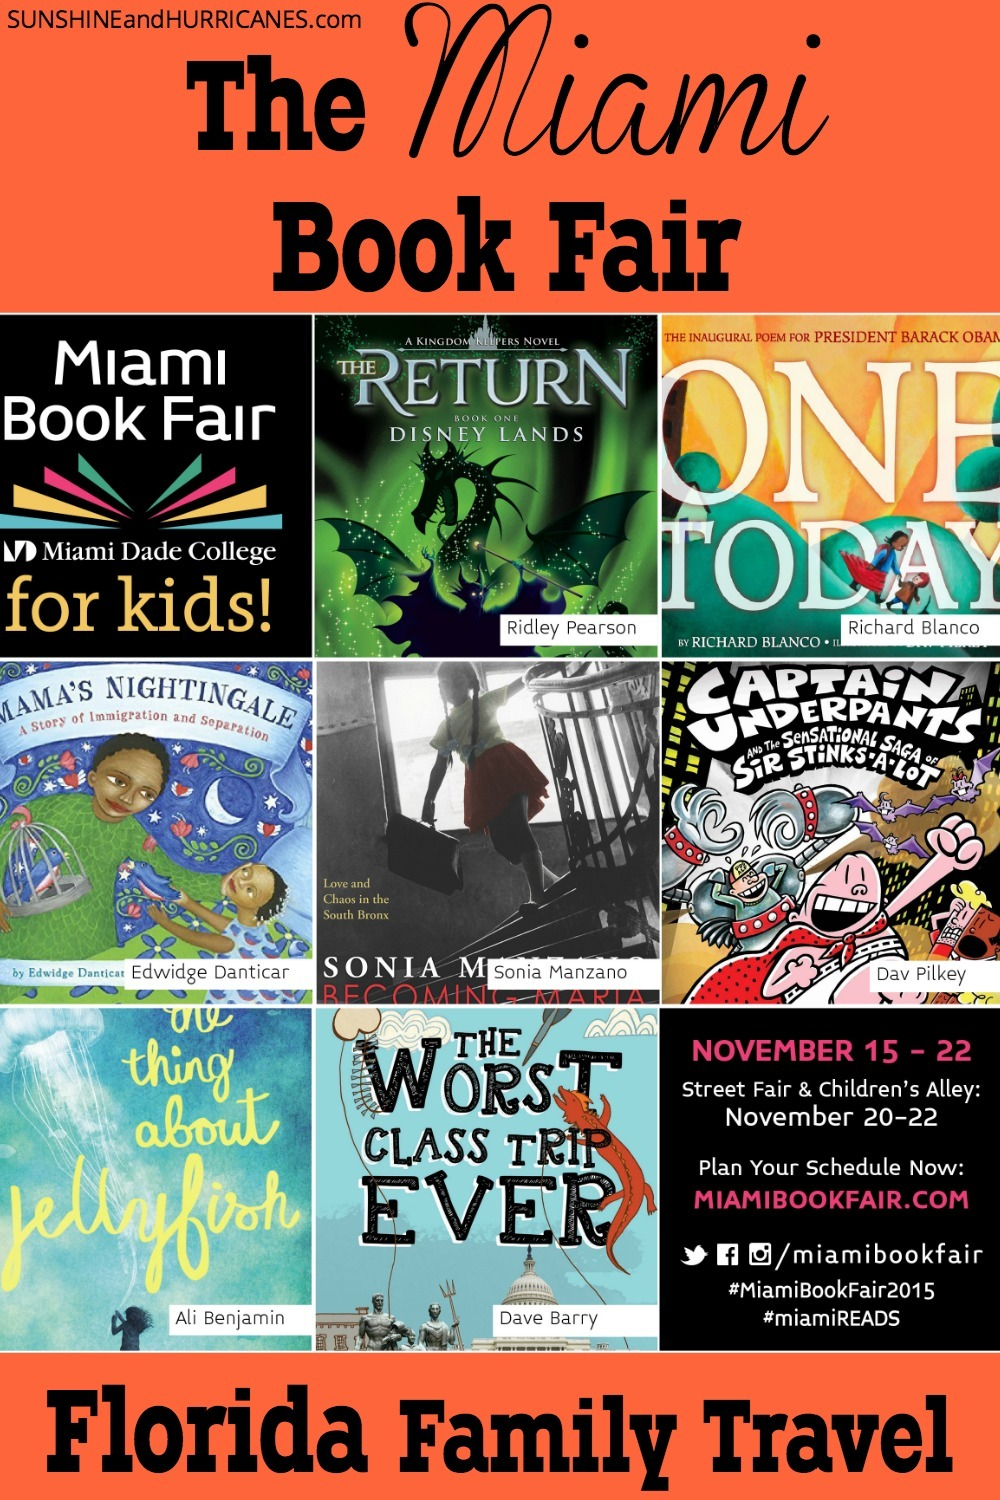 One of the biggest Book Fairs in the world takes place in Miami each November. An amazing event that engages readers of all ages and a great way to foster a love of reading in children. Famous authors, fun performances, great food and BOOKS, BOOKS and MORE BOOKS. Florida Family Travel - The Miami Book Fair